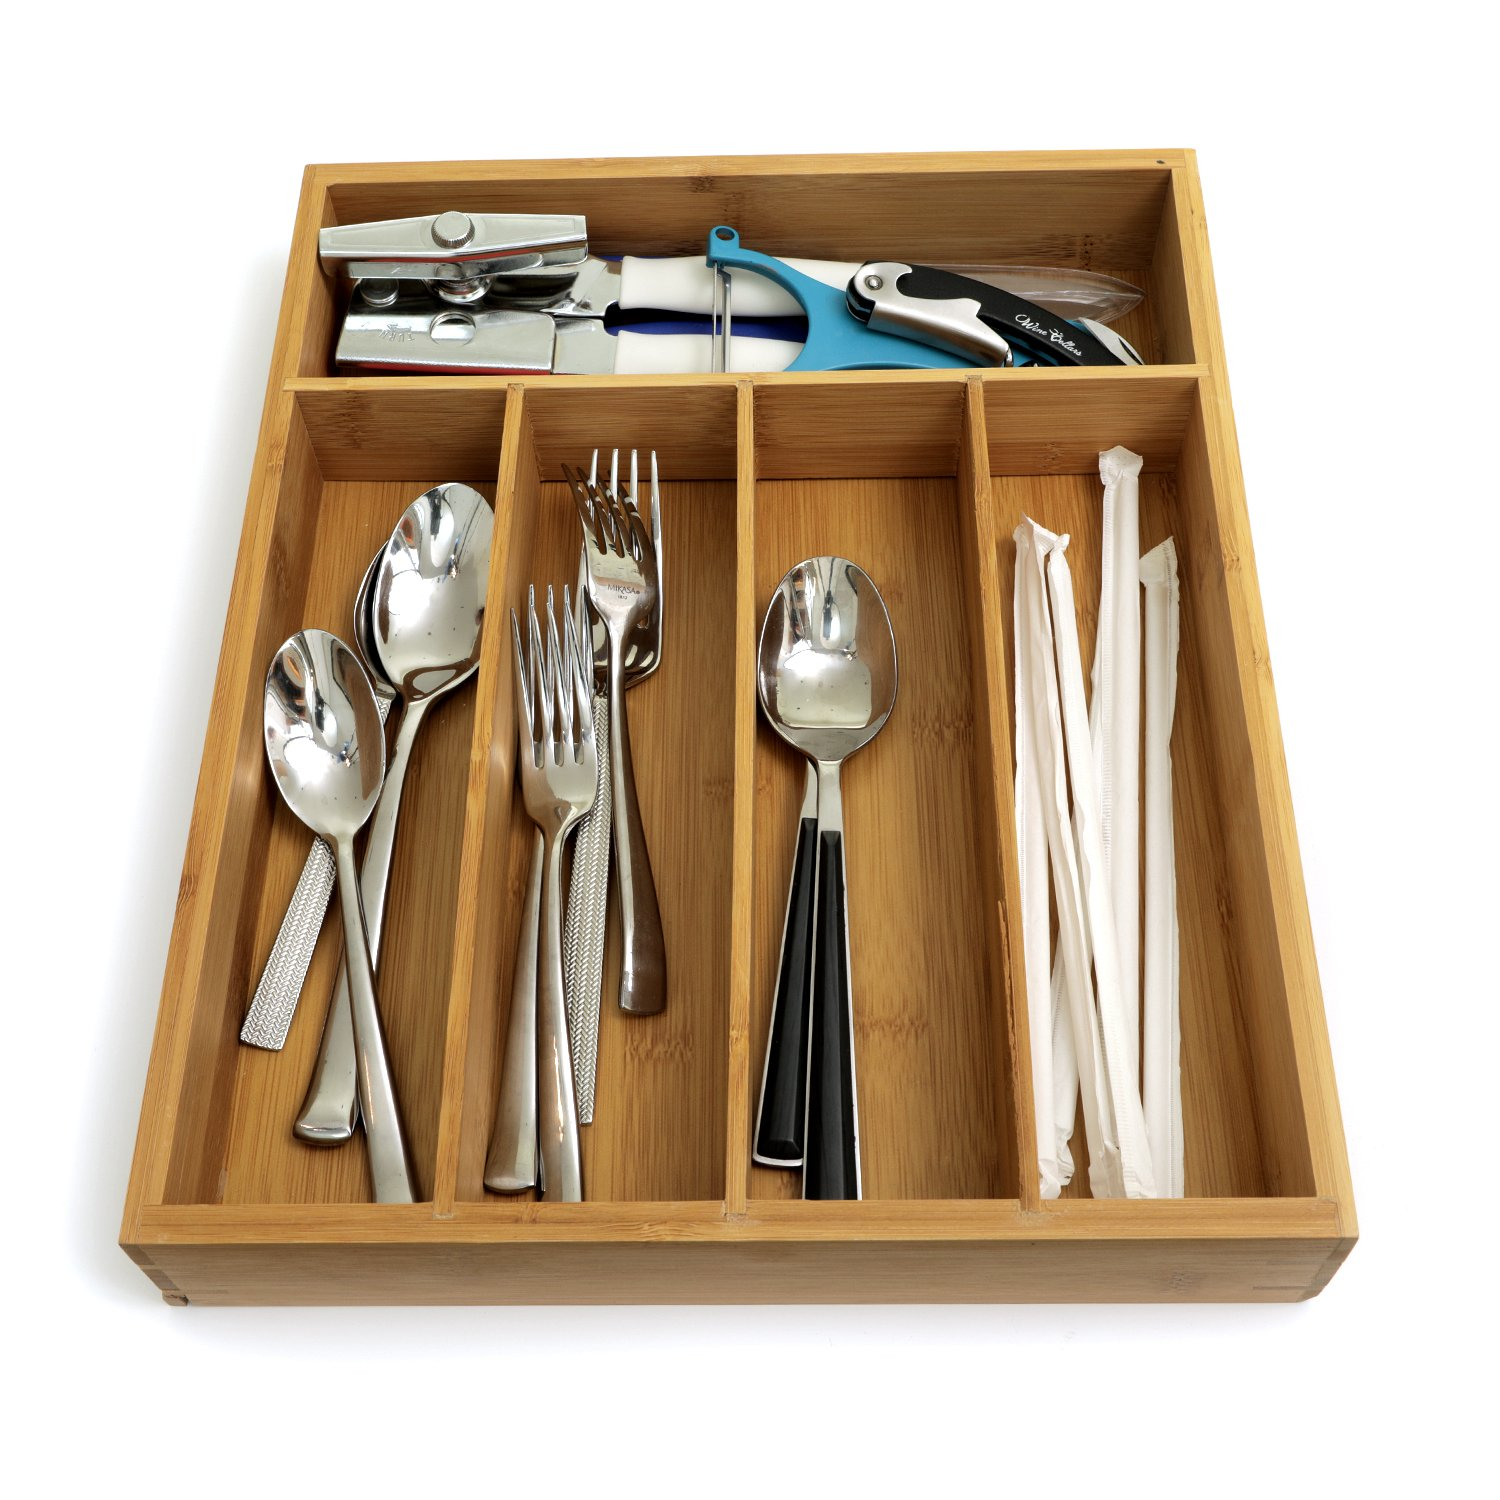 Zanzer Premium Organic Bamboo Cutlery Organizer - Adjustable with 5 Compartments Storage Dividers | Multifunctional and Perfect Holder for Kitchen Utensil, Flatware, Silverware - 14'' x 11.5'' x 2.25''